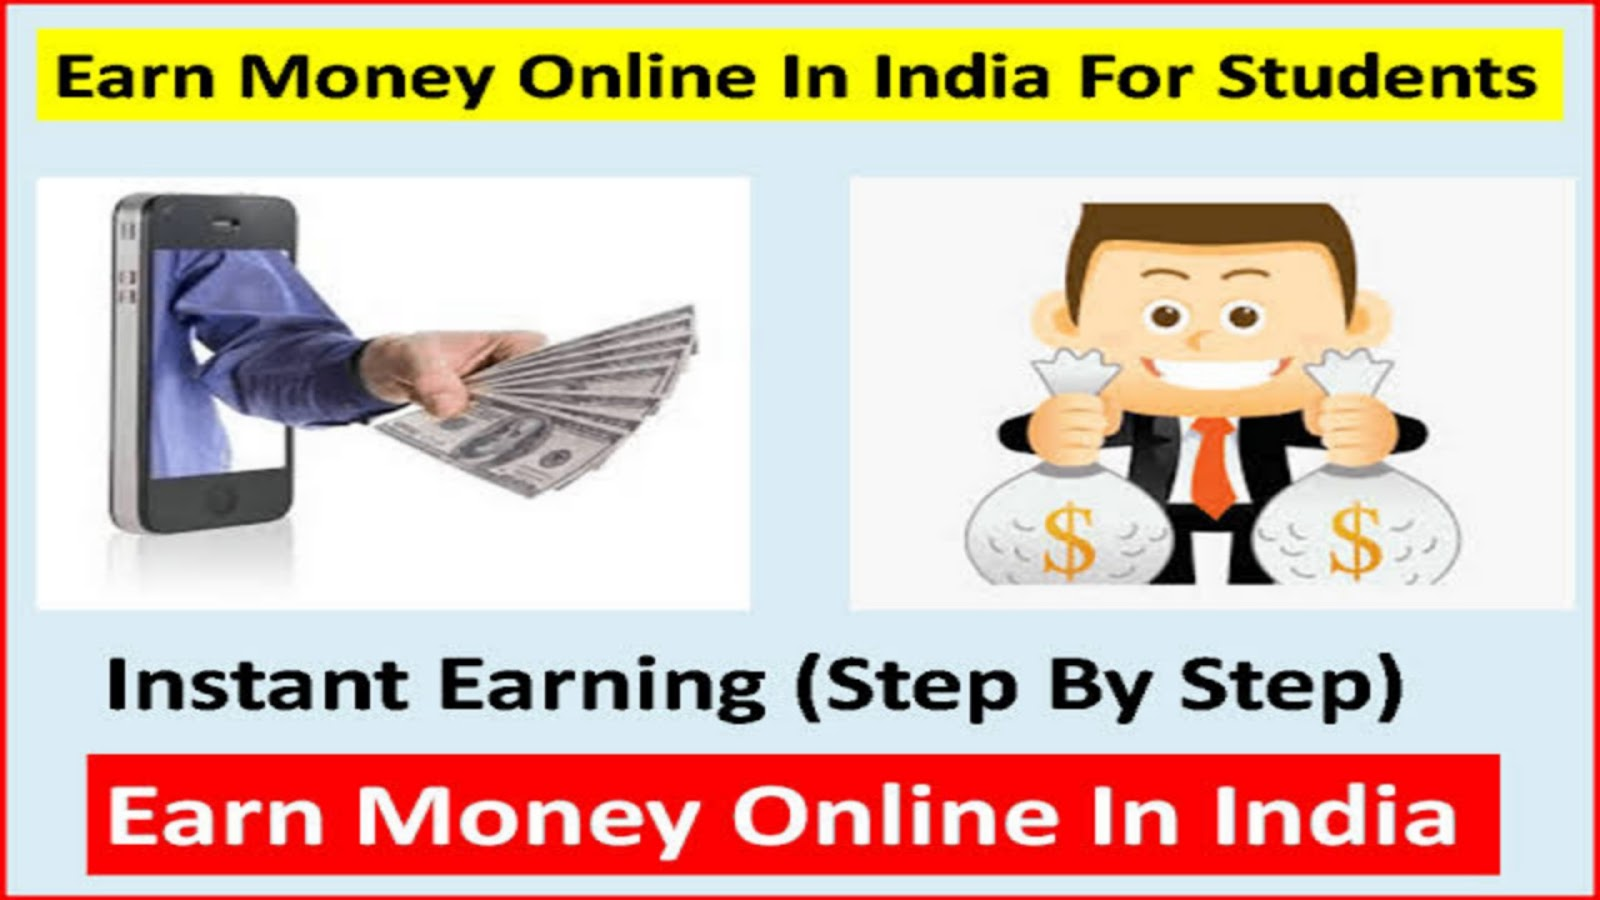 Earn Money Online in India for Students, Earn Money Online, Earn Money Online in India, Earn Money Online for Students